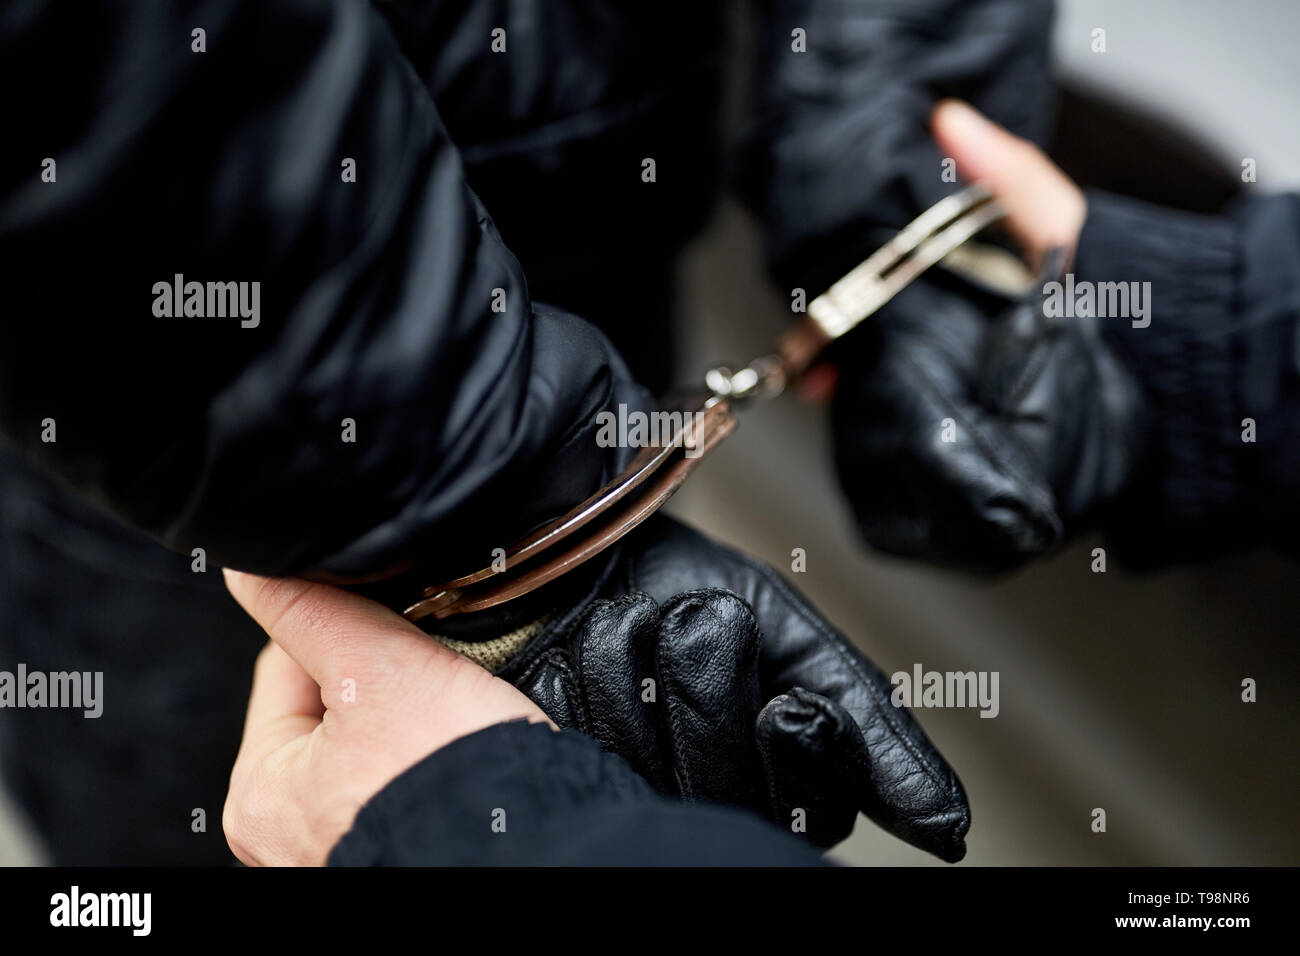 Hands handcuffed behind the back of police at arrest - Stock Image